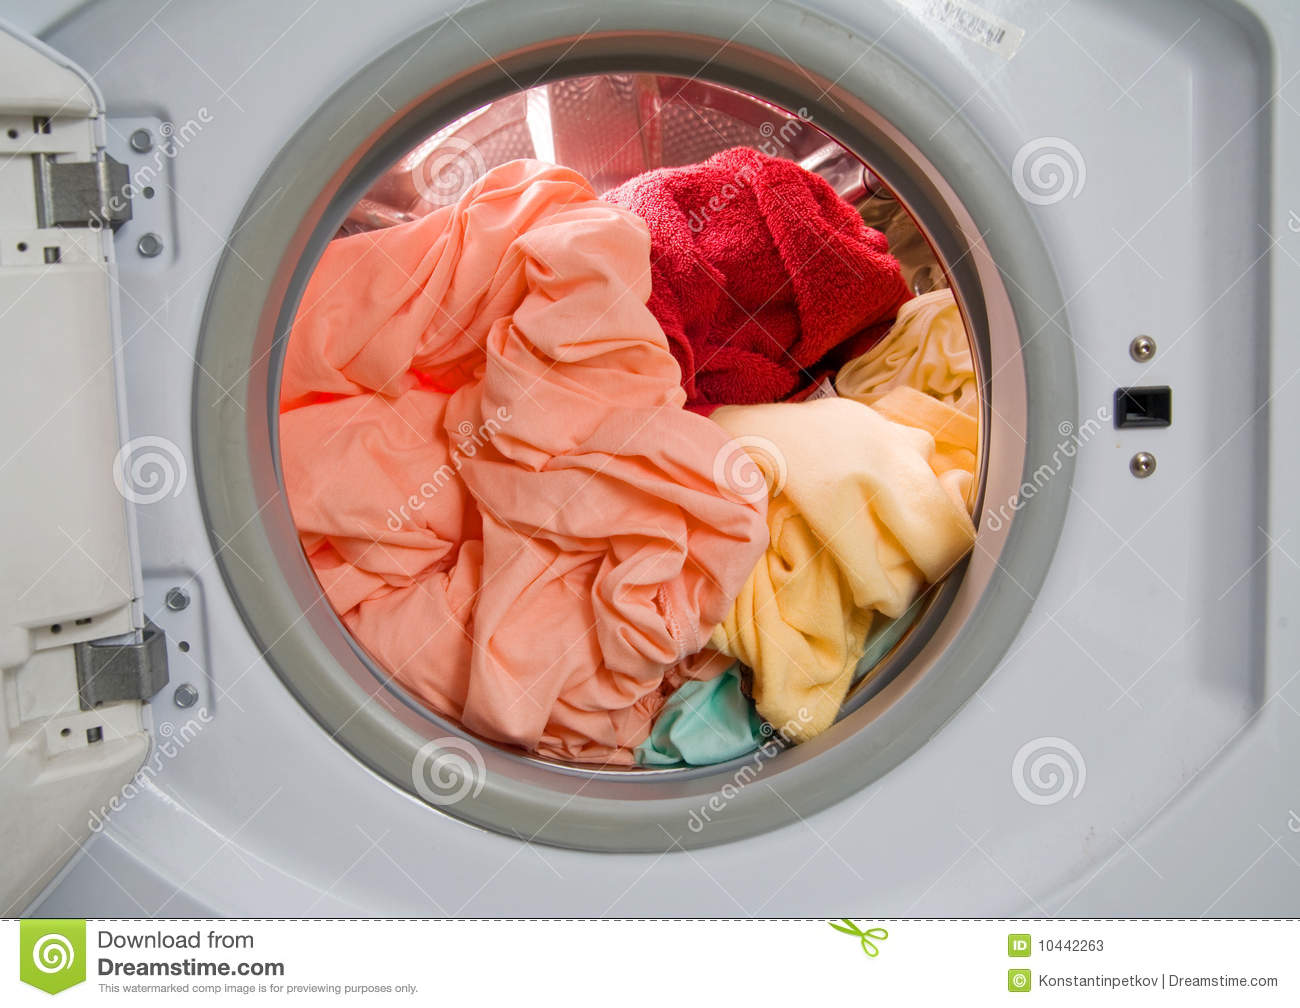 Dirty Laundry In Washing Machine Stock Image Image Of